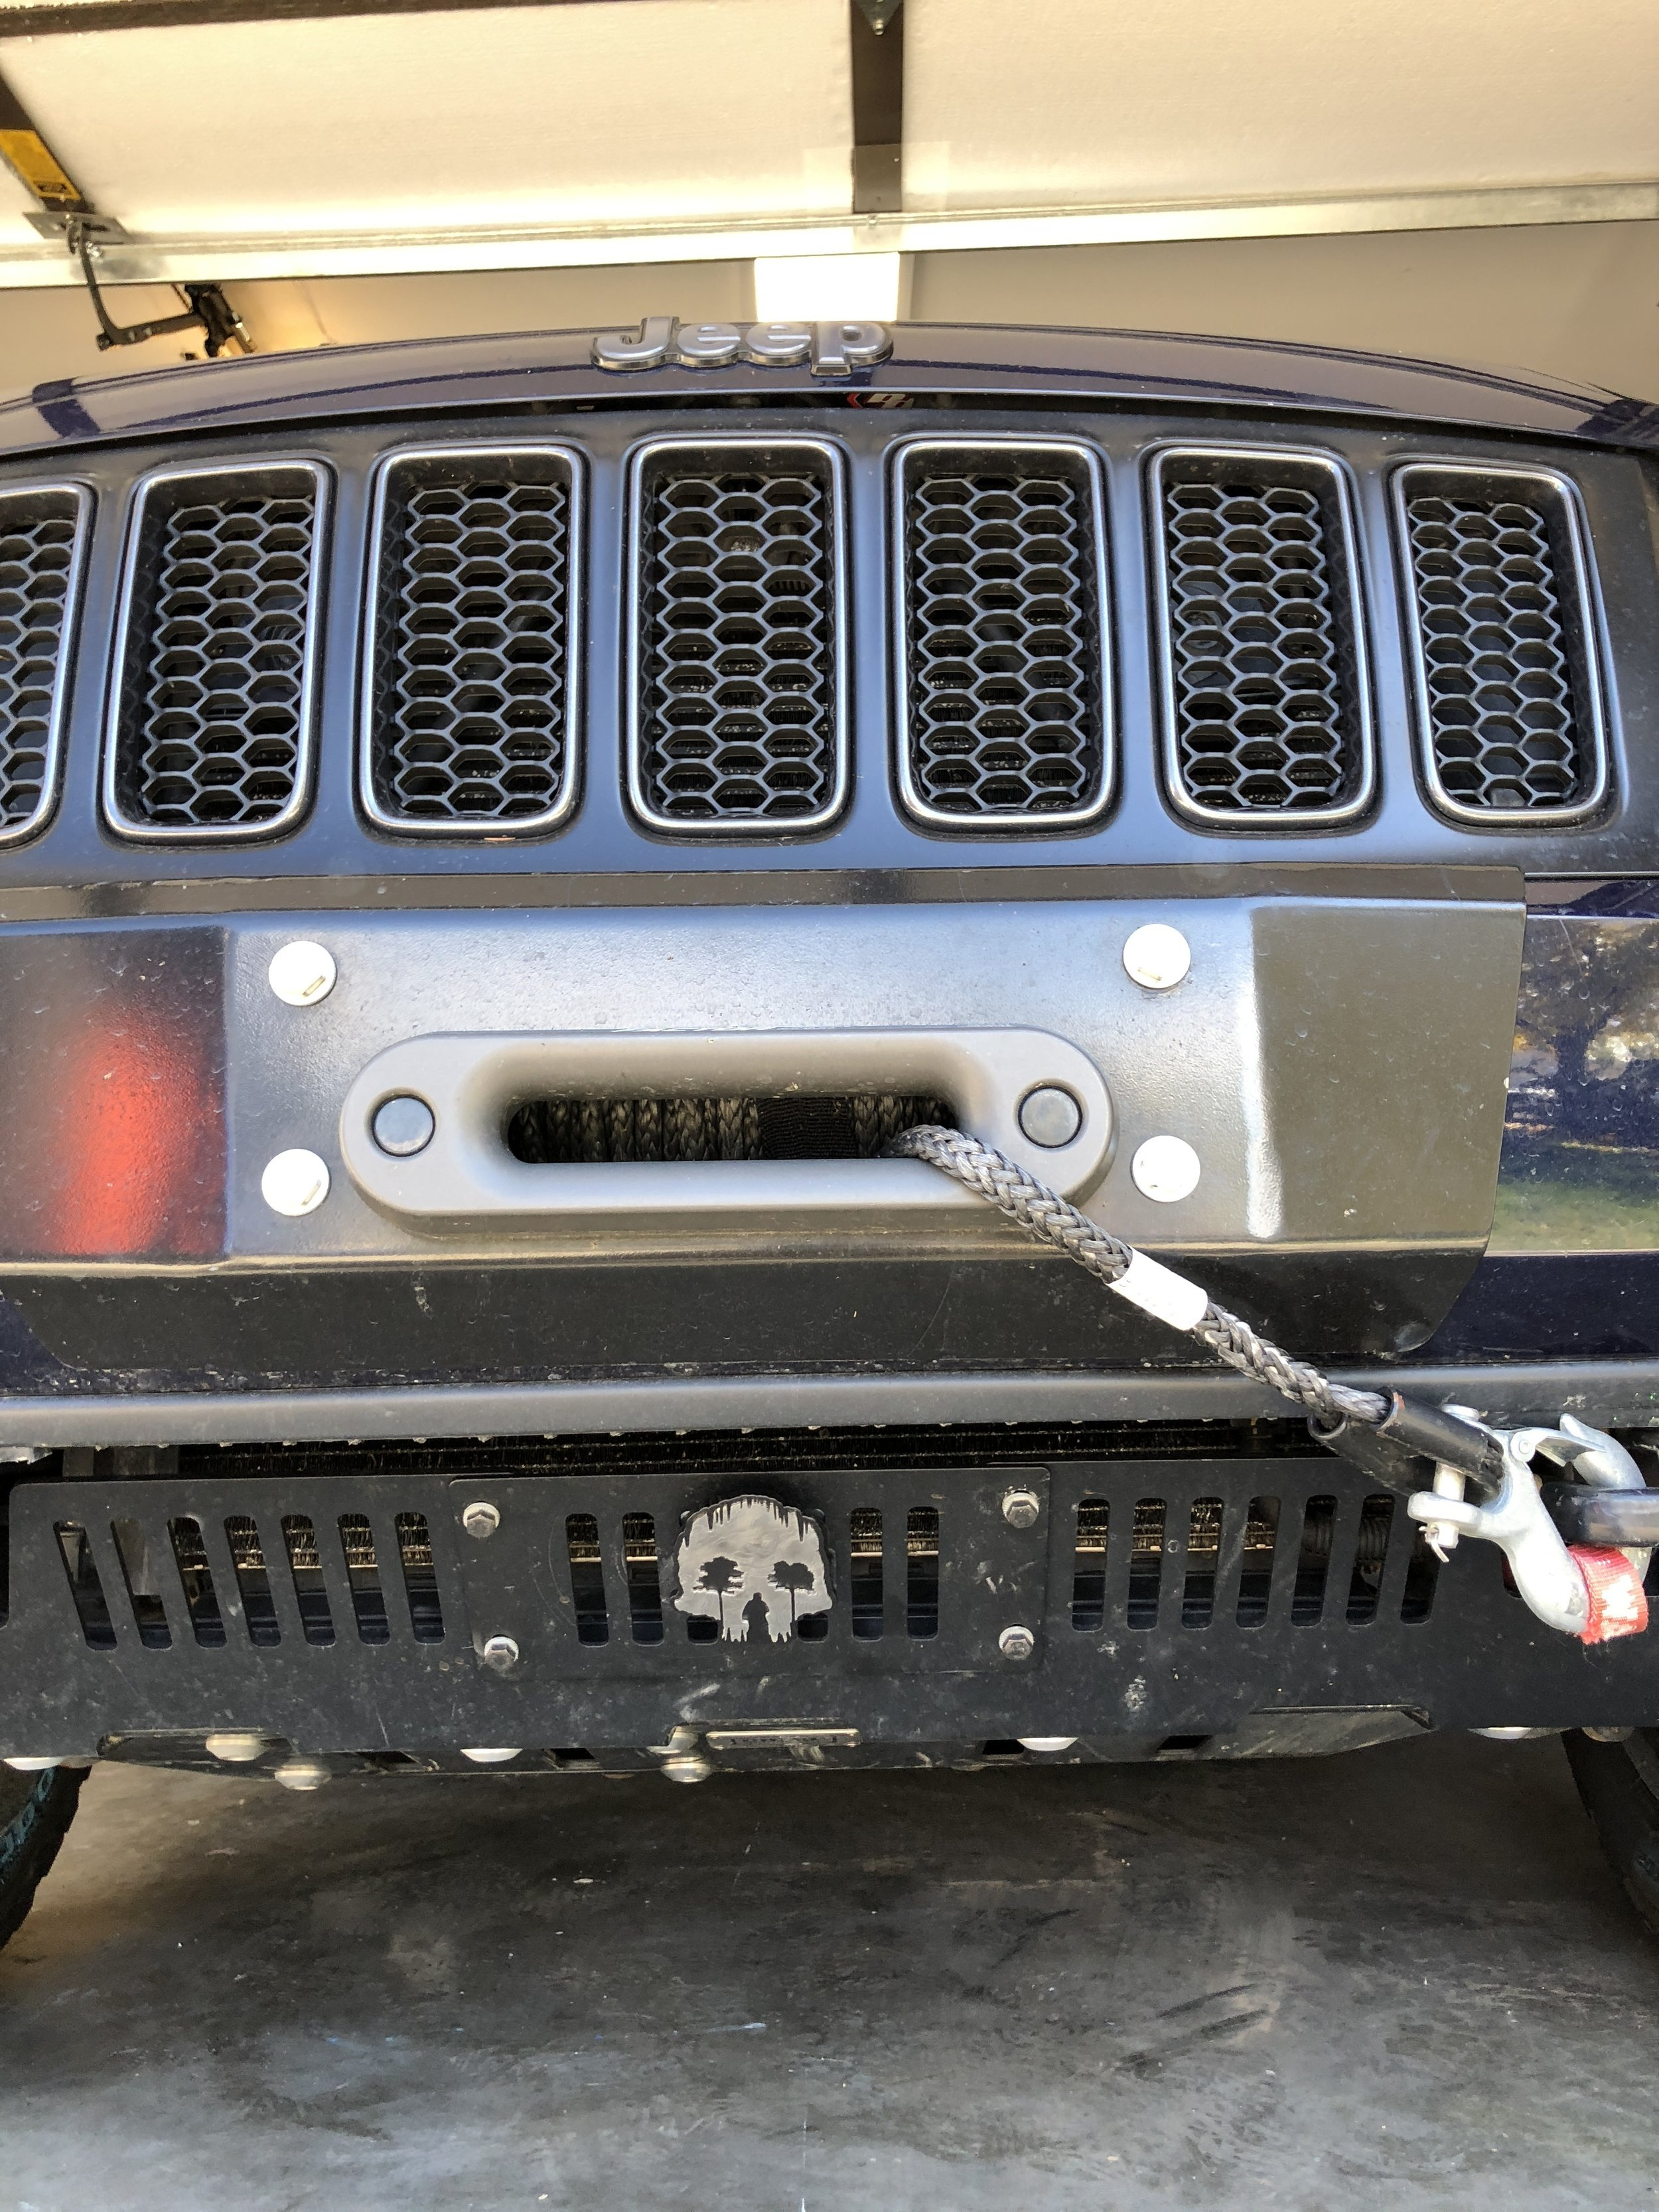 The Chief Products Lower Front Guard with a Triple Aught Design grille badge.  Alsoi shown is the Rocky Road Outfitters hidden winch mount with bumper plate and a Factor 55 fairlead.